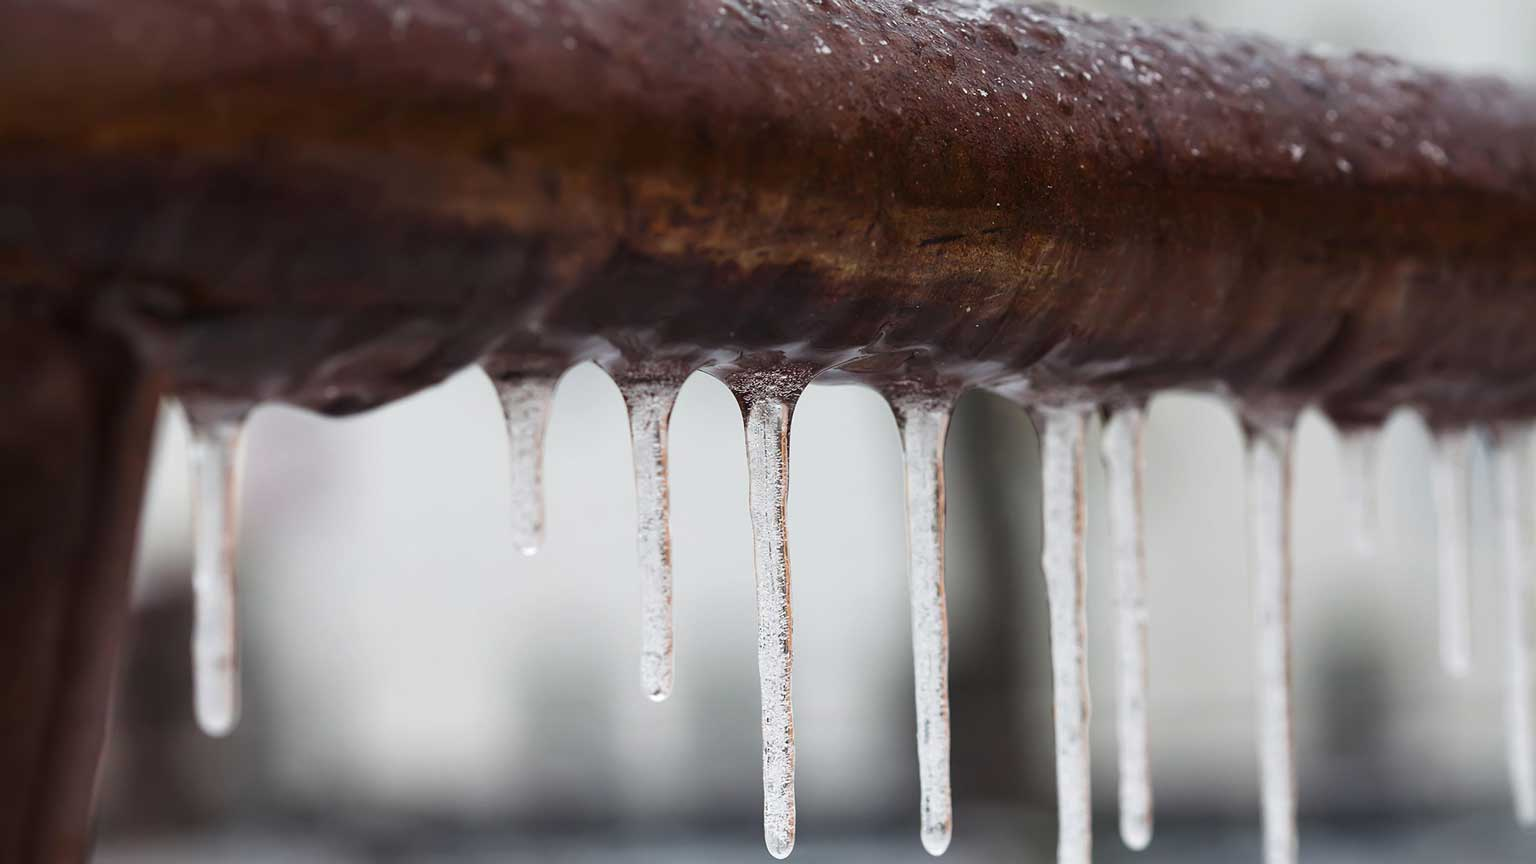 LHR plumbing and heating, new hamshire manchester plumber, hvac manchester nh, how to avoid frozen pipes this winter